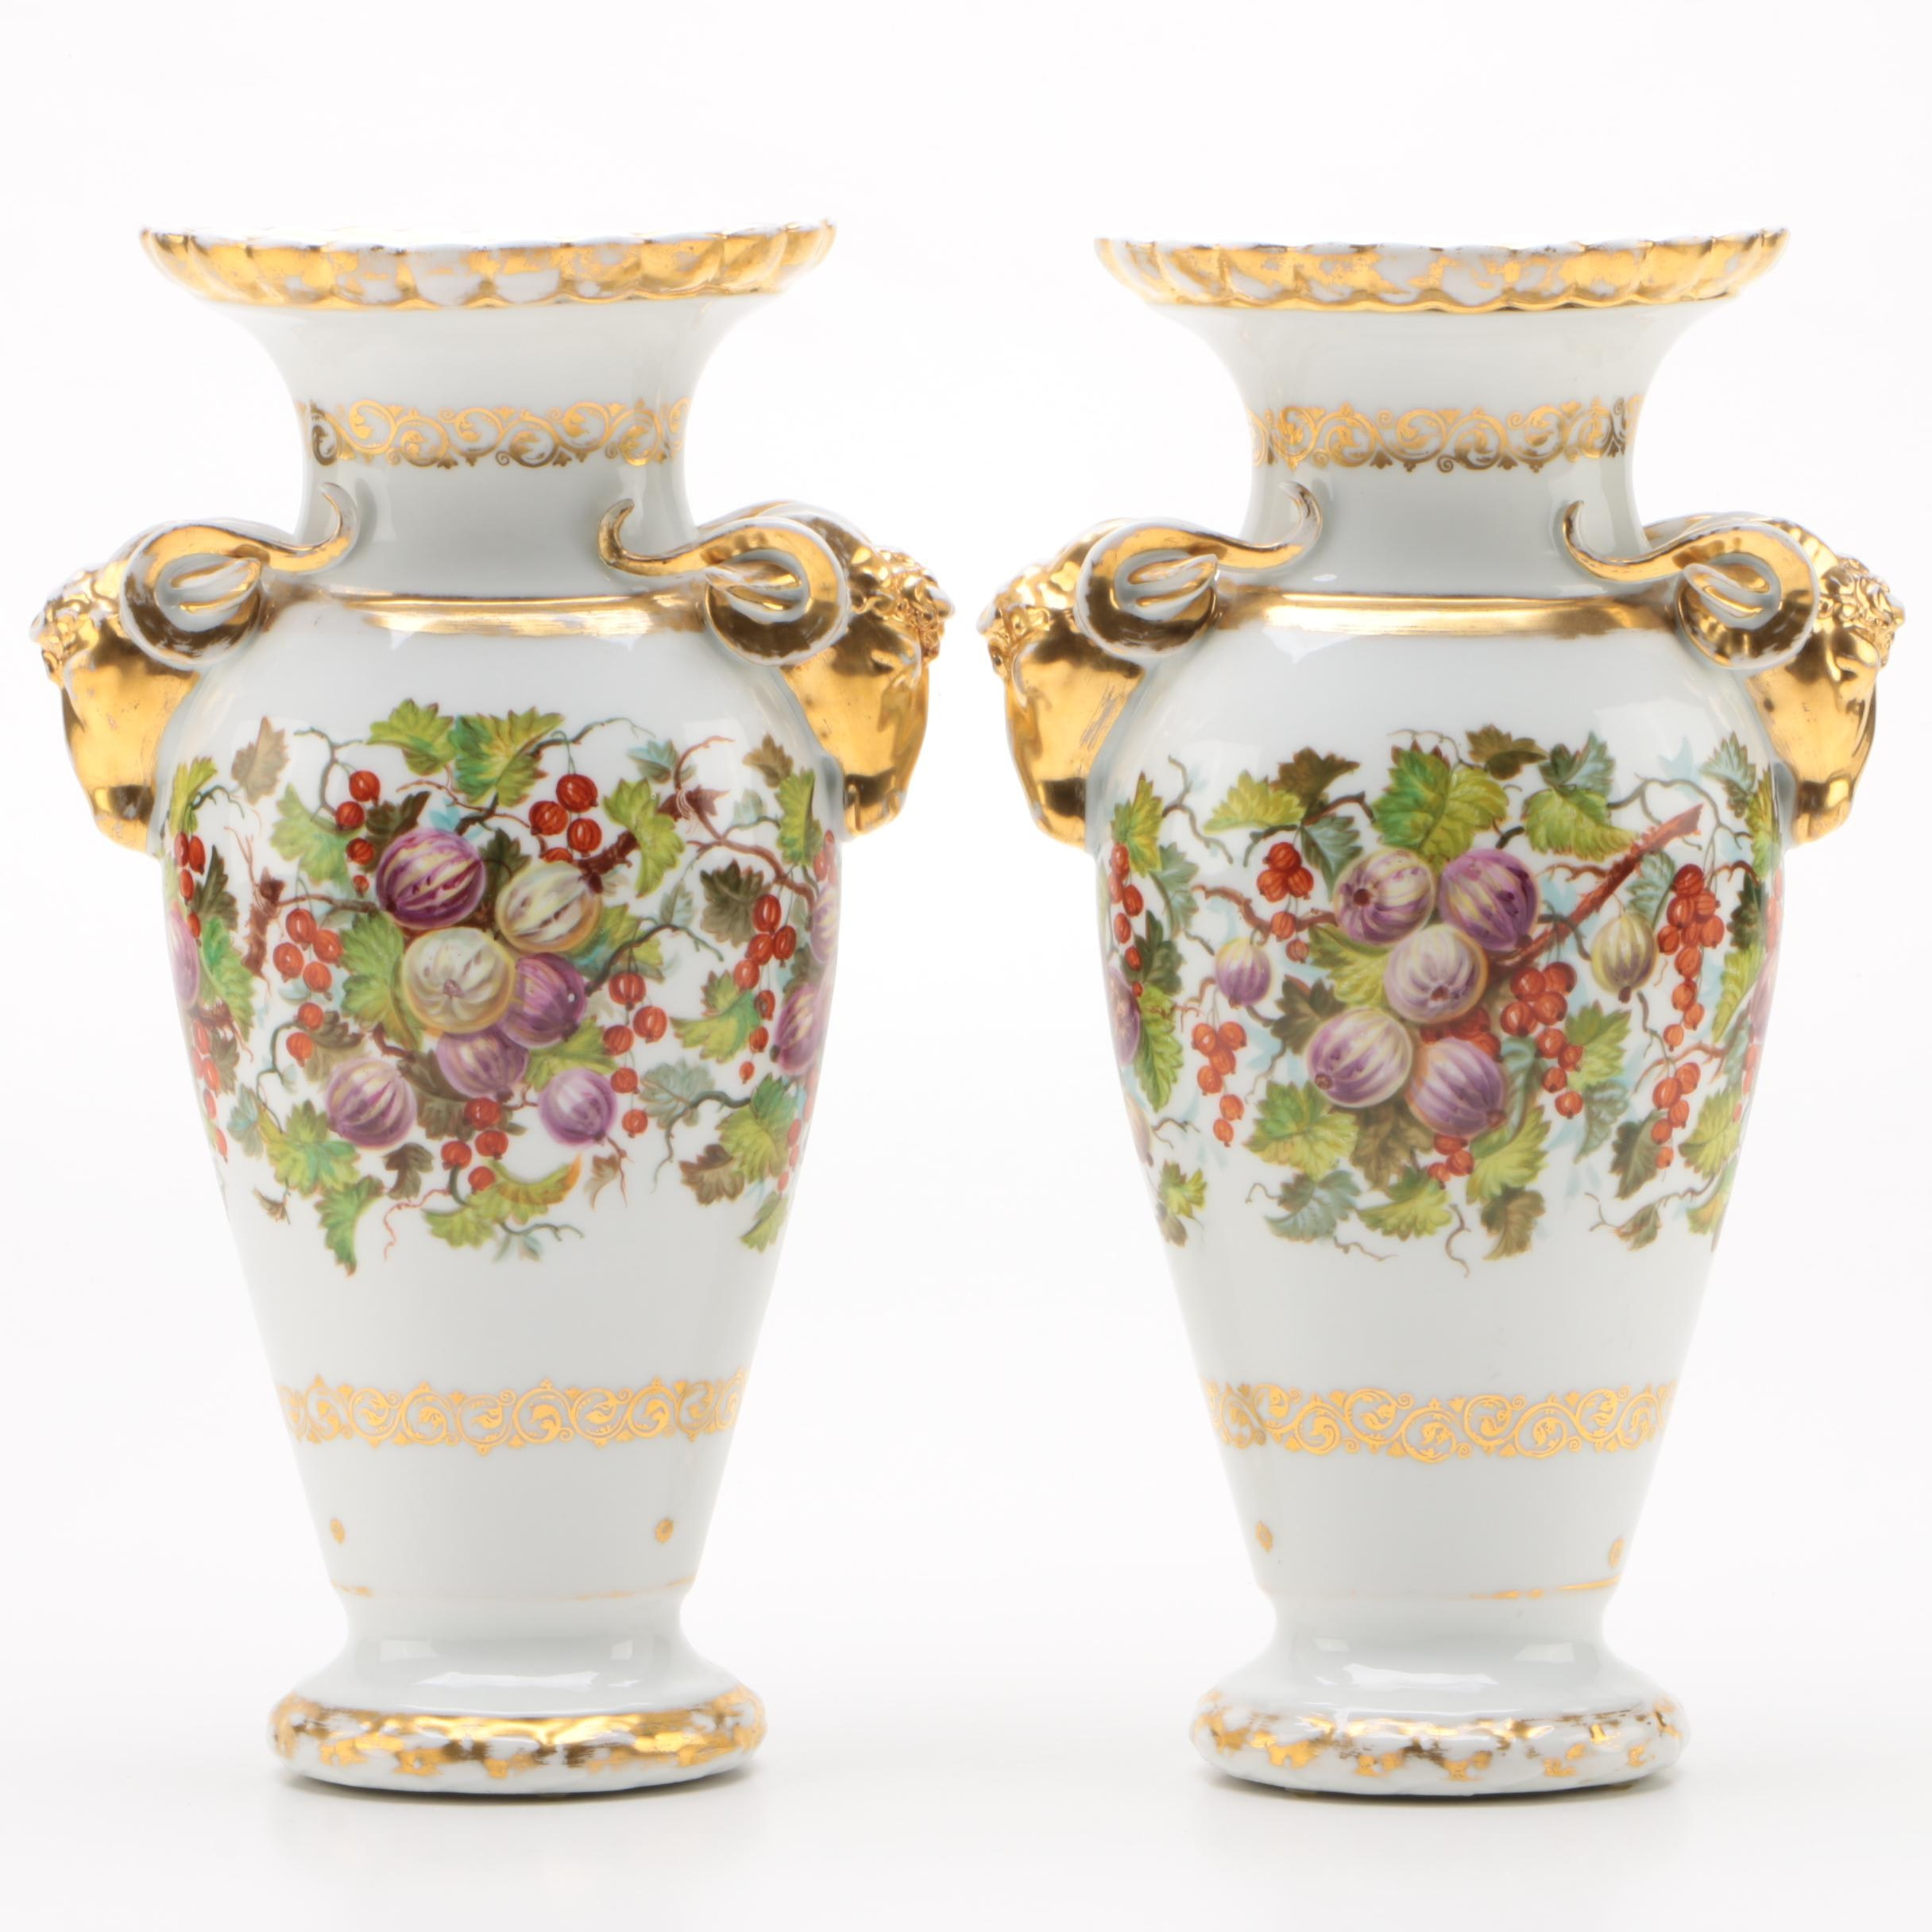 Gilded Porcelain Vases with Ram Head Handles, Late 19th/Early 20th Century